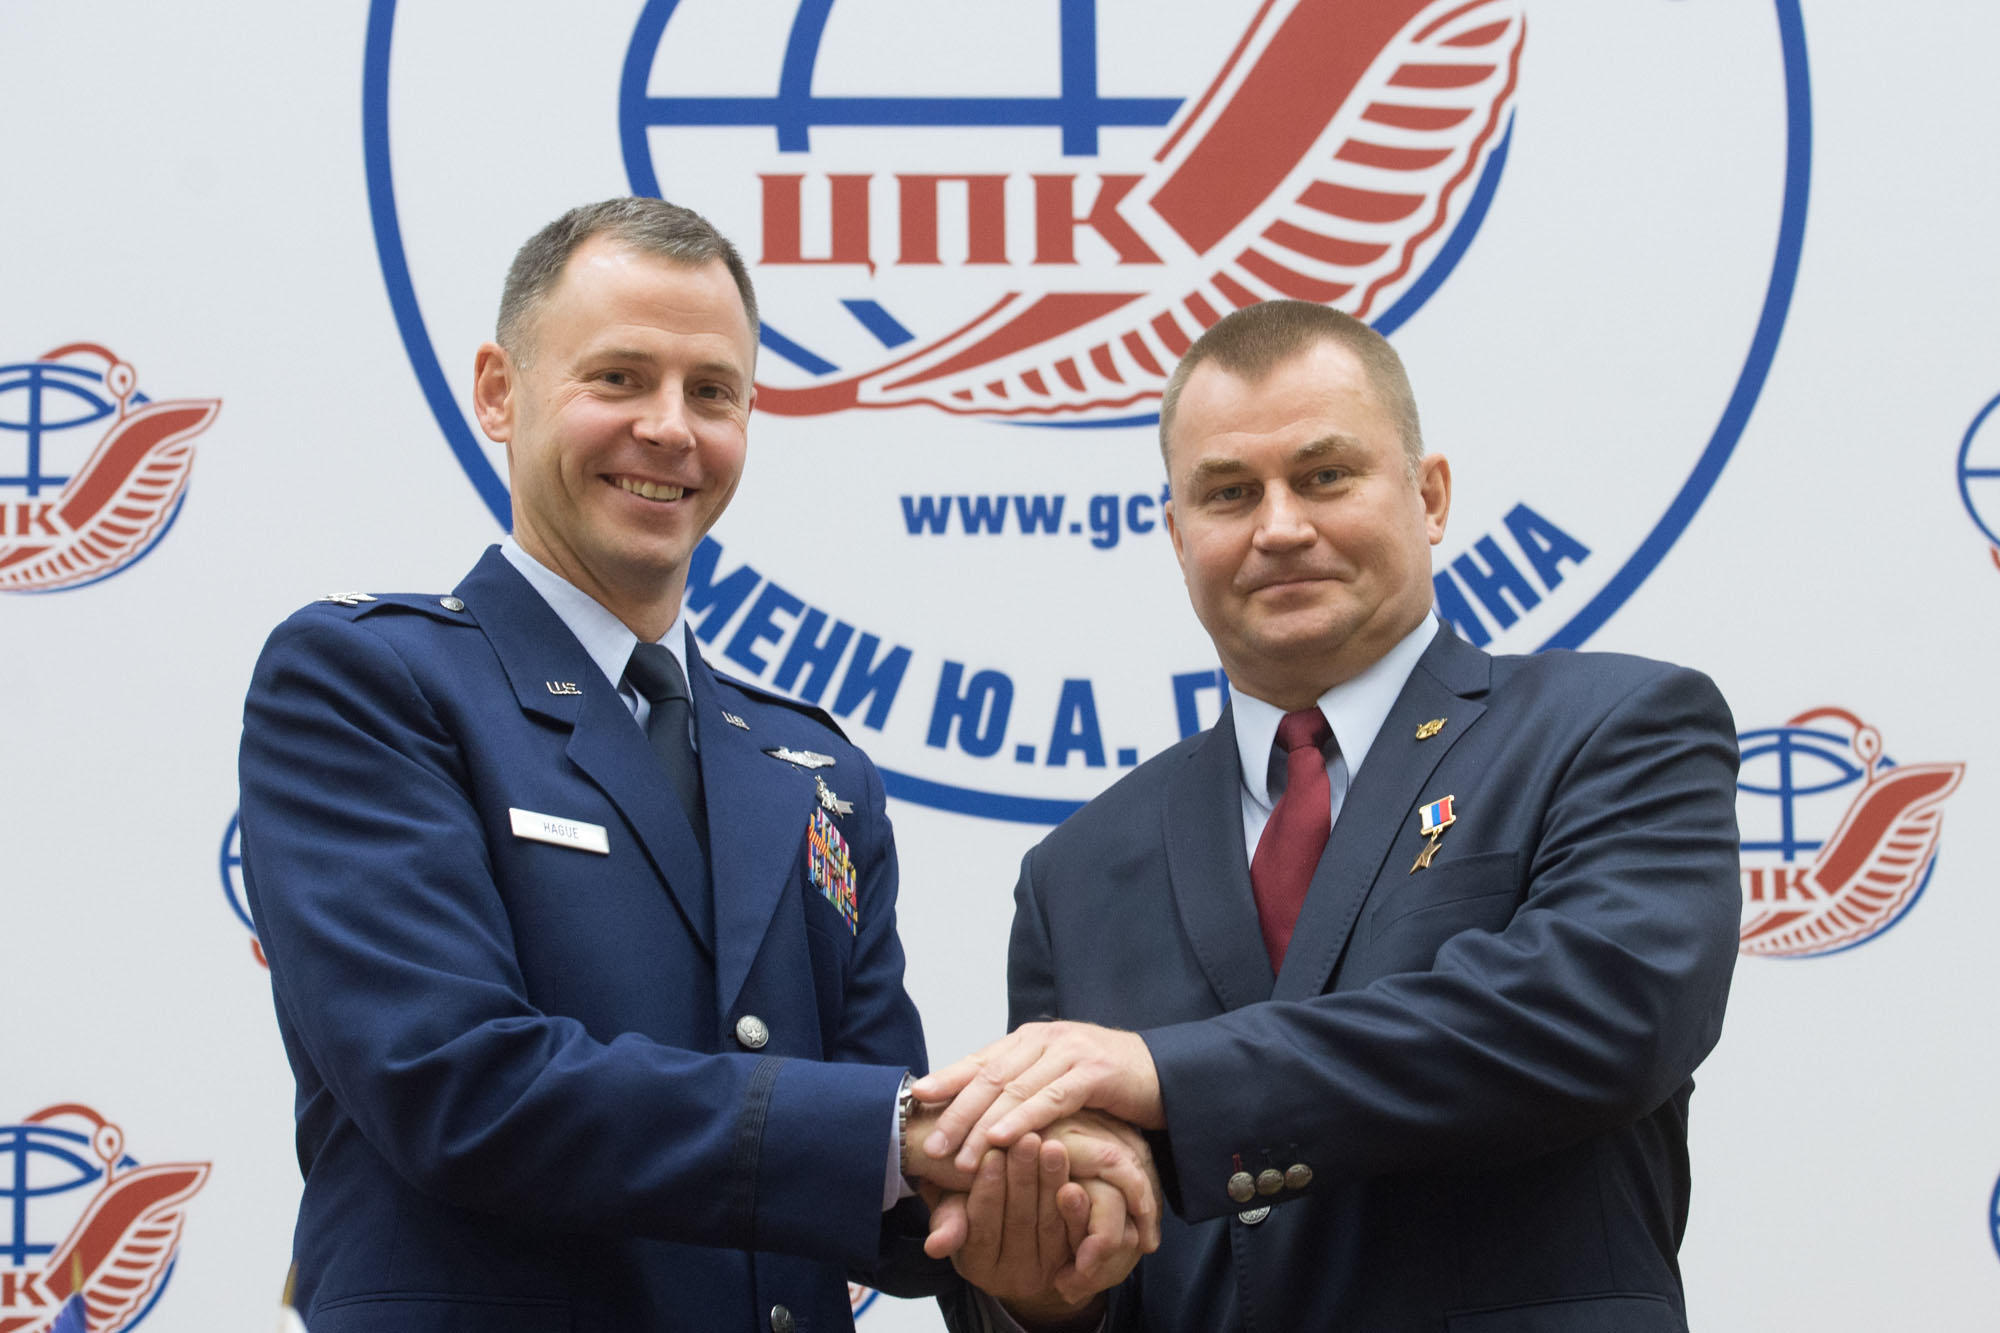 At the Gagarin Cosmonaut Training Center in Star City, Russia, Expedition 57 crewmembers Nick Hague of NASA (left) and Alexey Ovchinin of Roscosmos (right) pose for pictures Sept. 17 after a crew news conference. Hague and Ovchinin will launch Oct. 11 fro